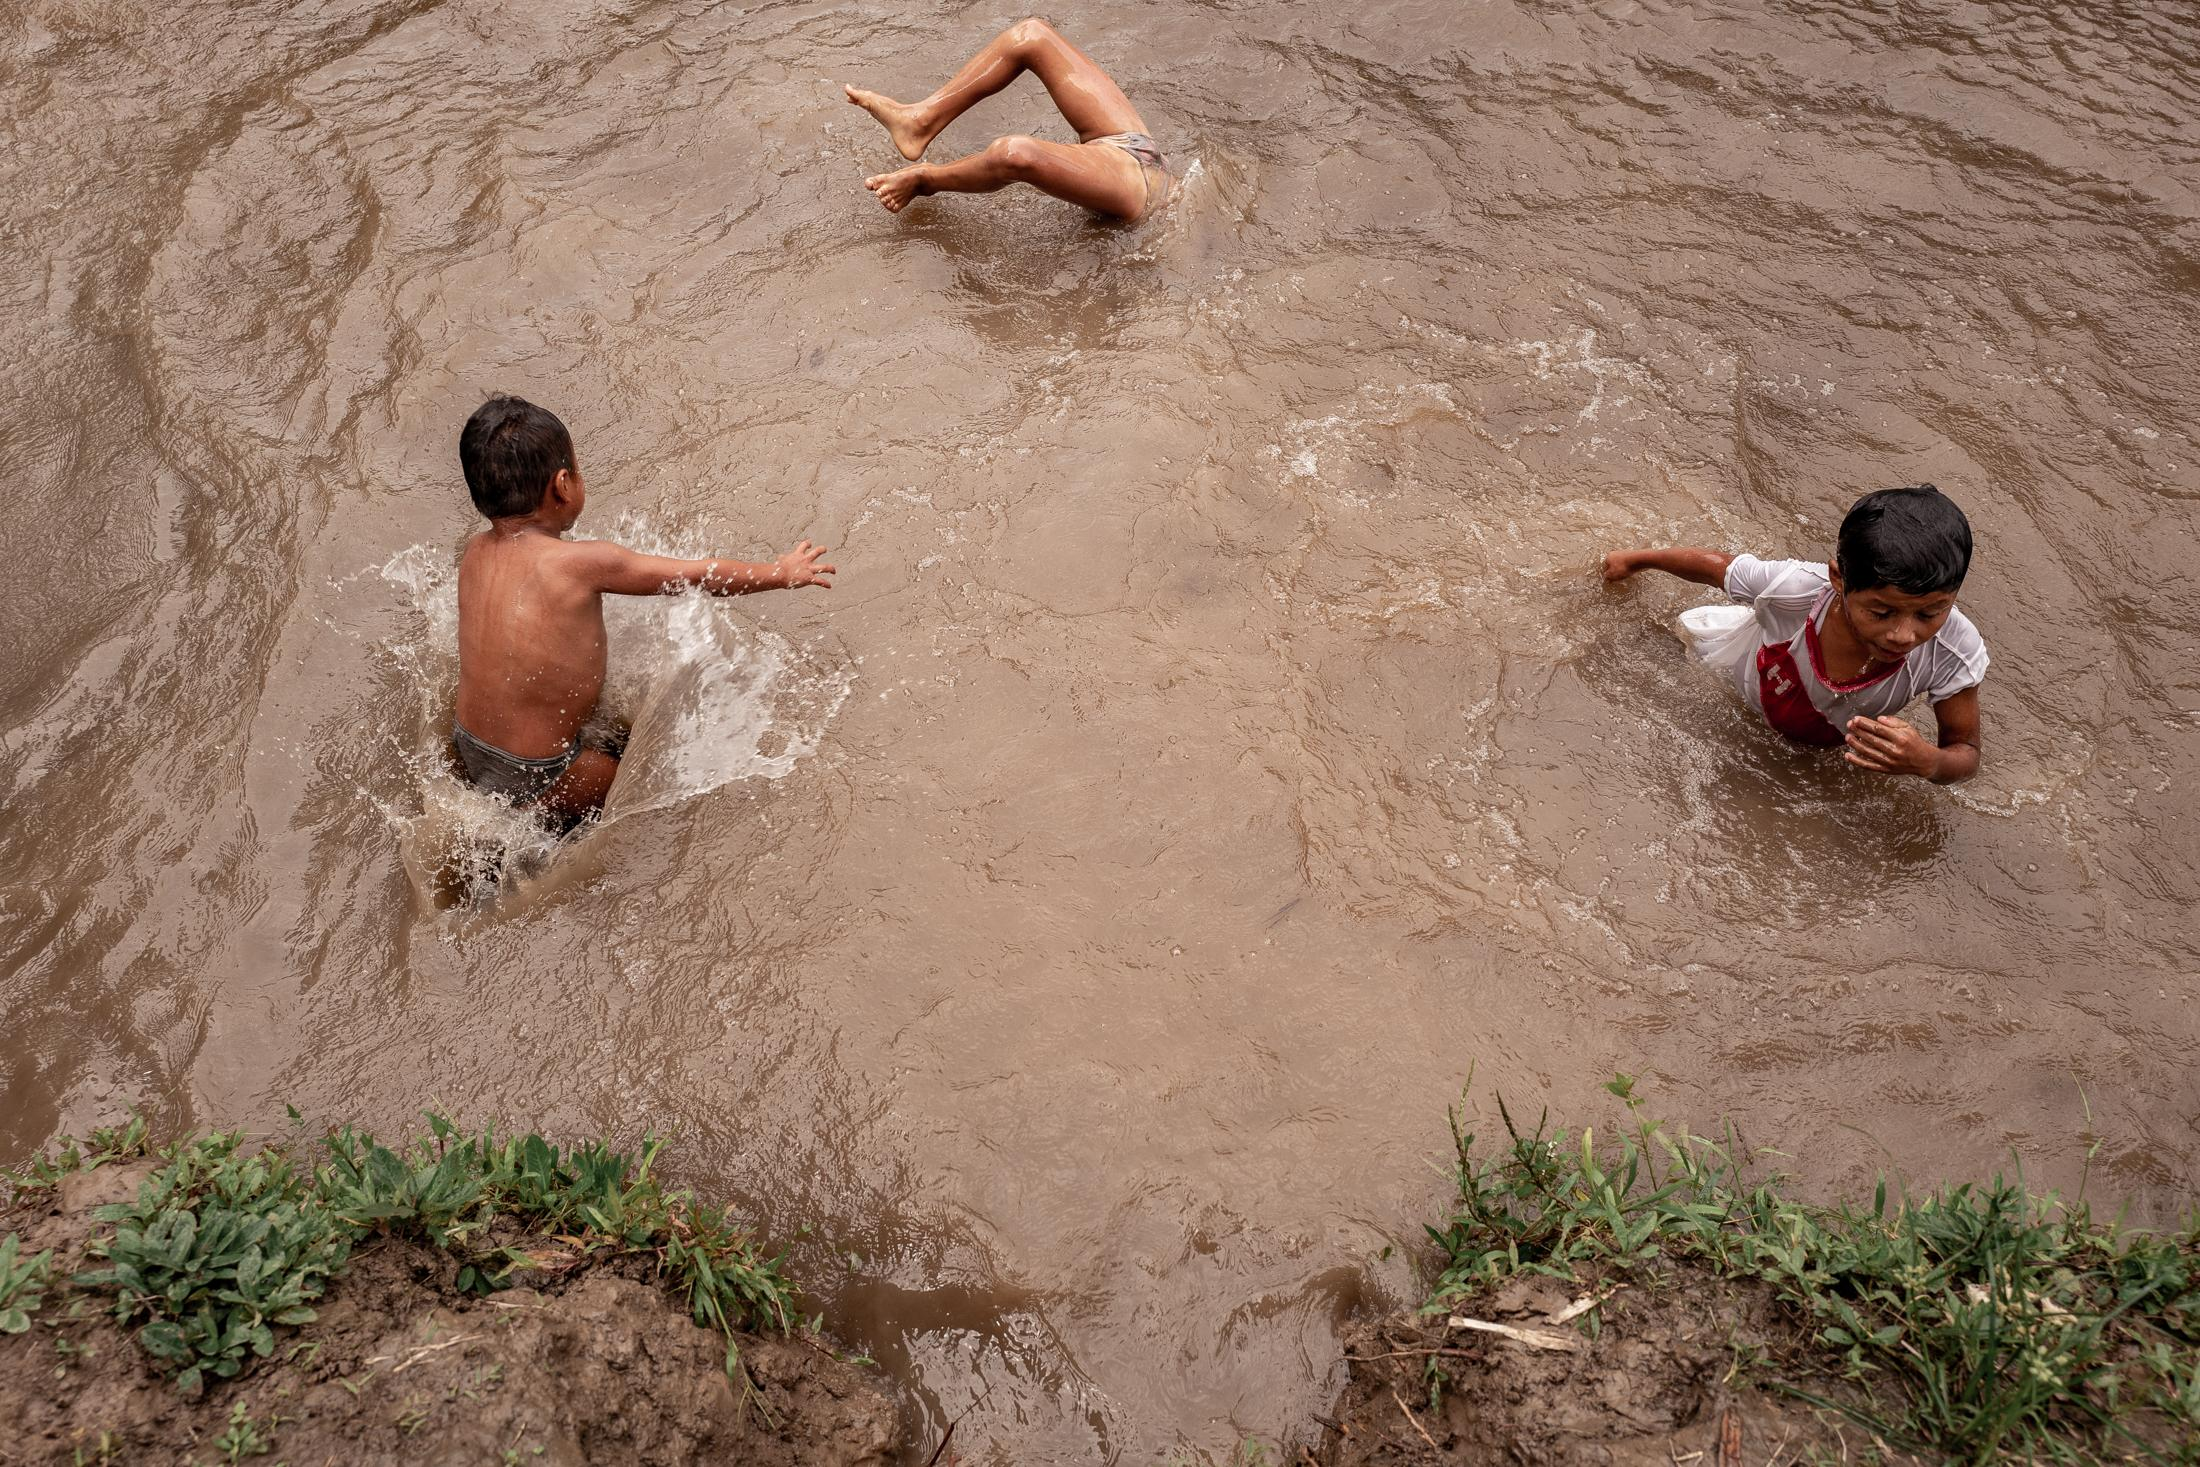 Children of the Wampís ethnic group play in the waters of the Amazon.